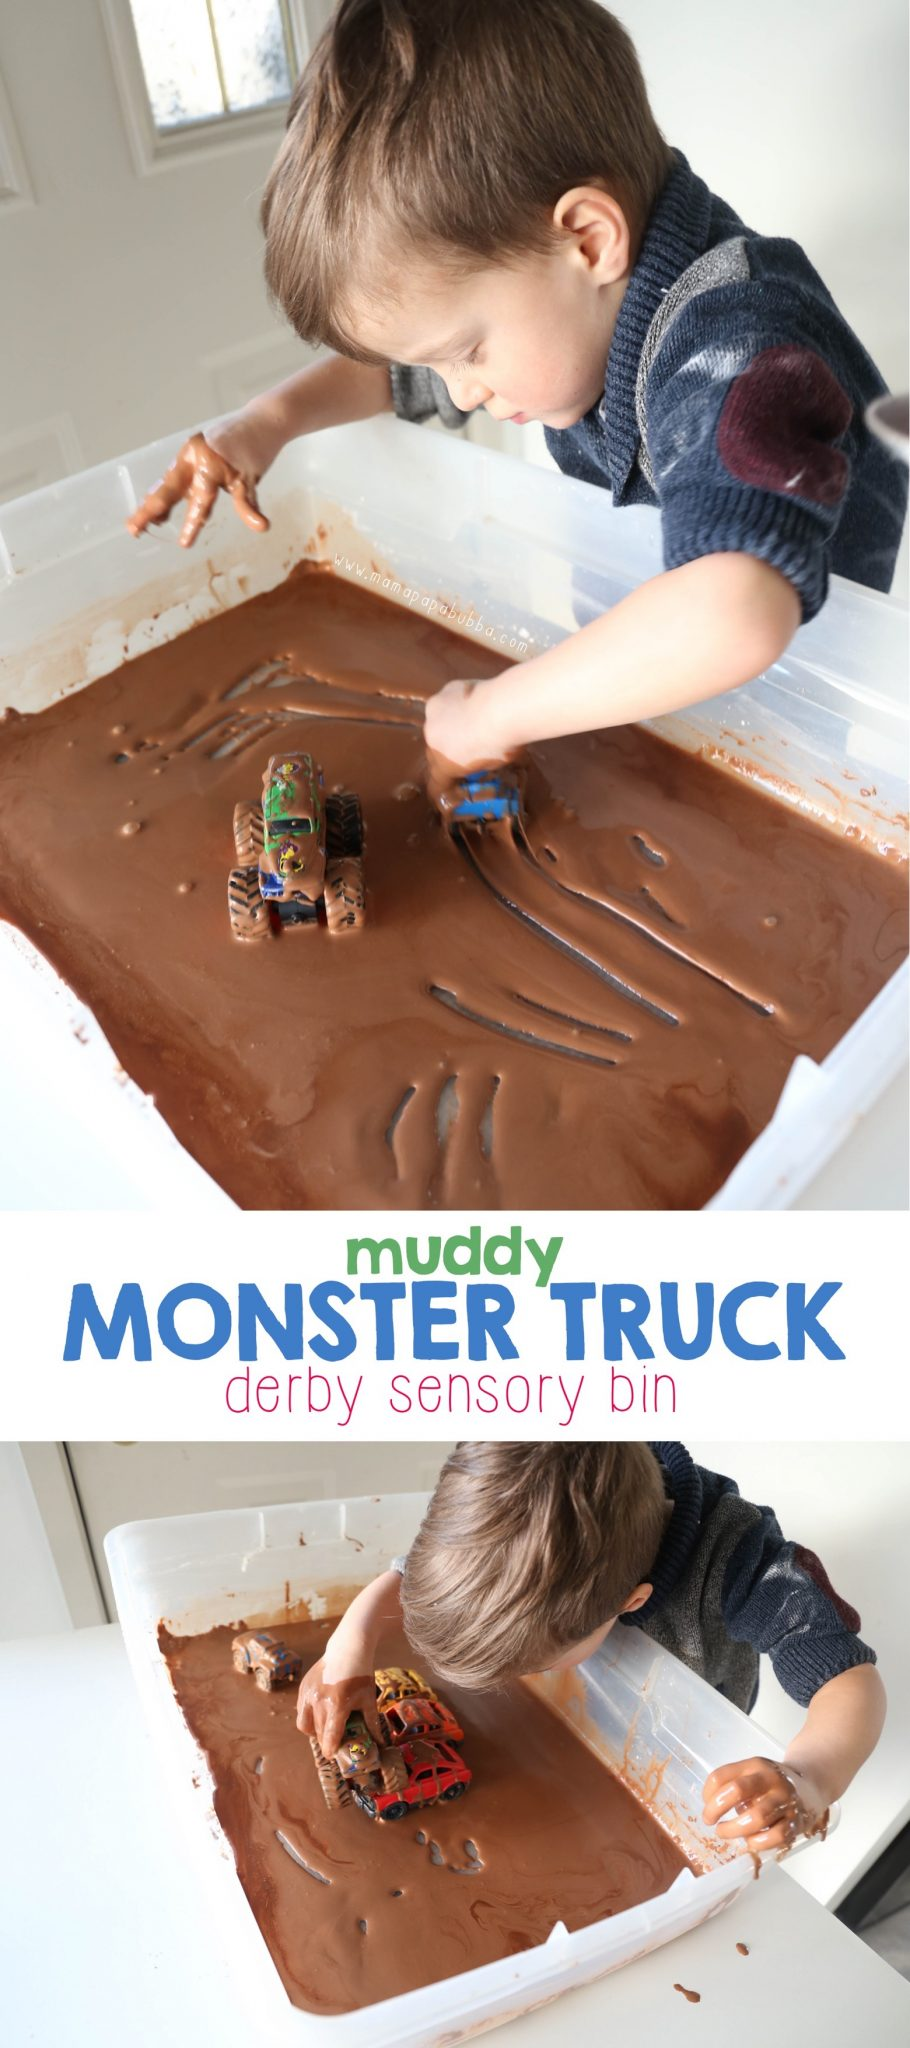 Muddy Monster Truck Derby Sensory Play | Mama Papa Bubba